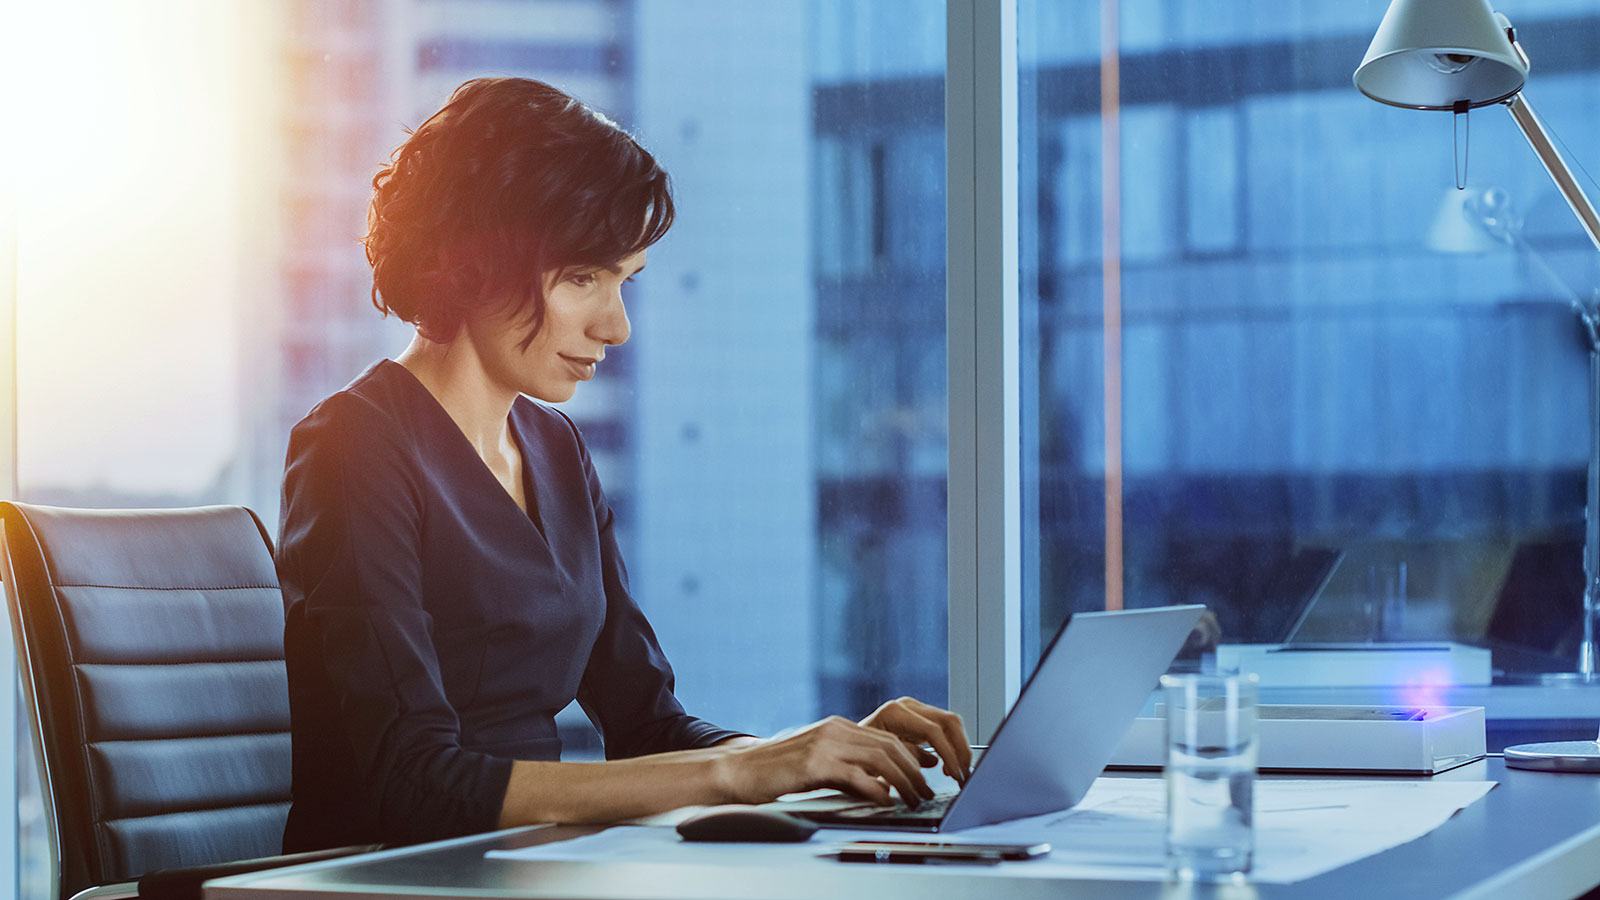 7 tips for women determined to become a CEO